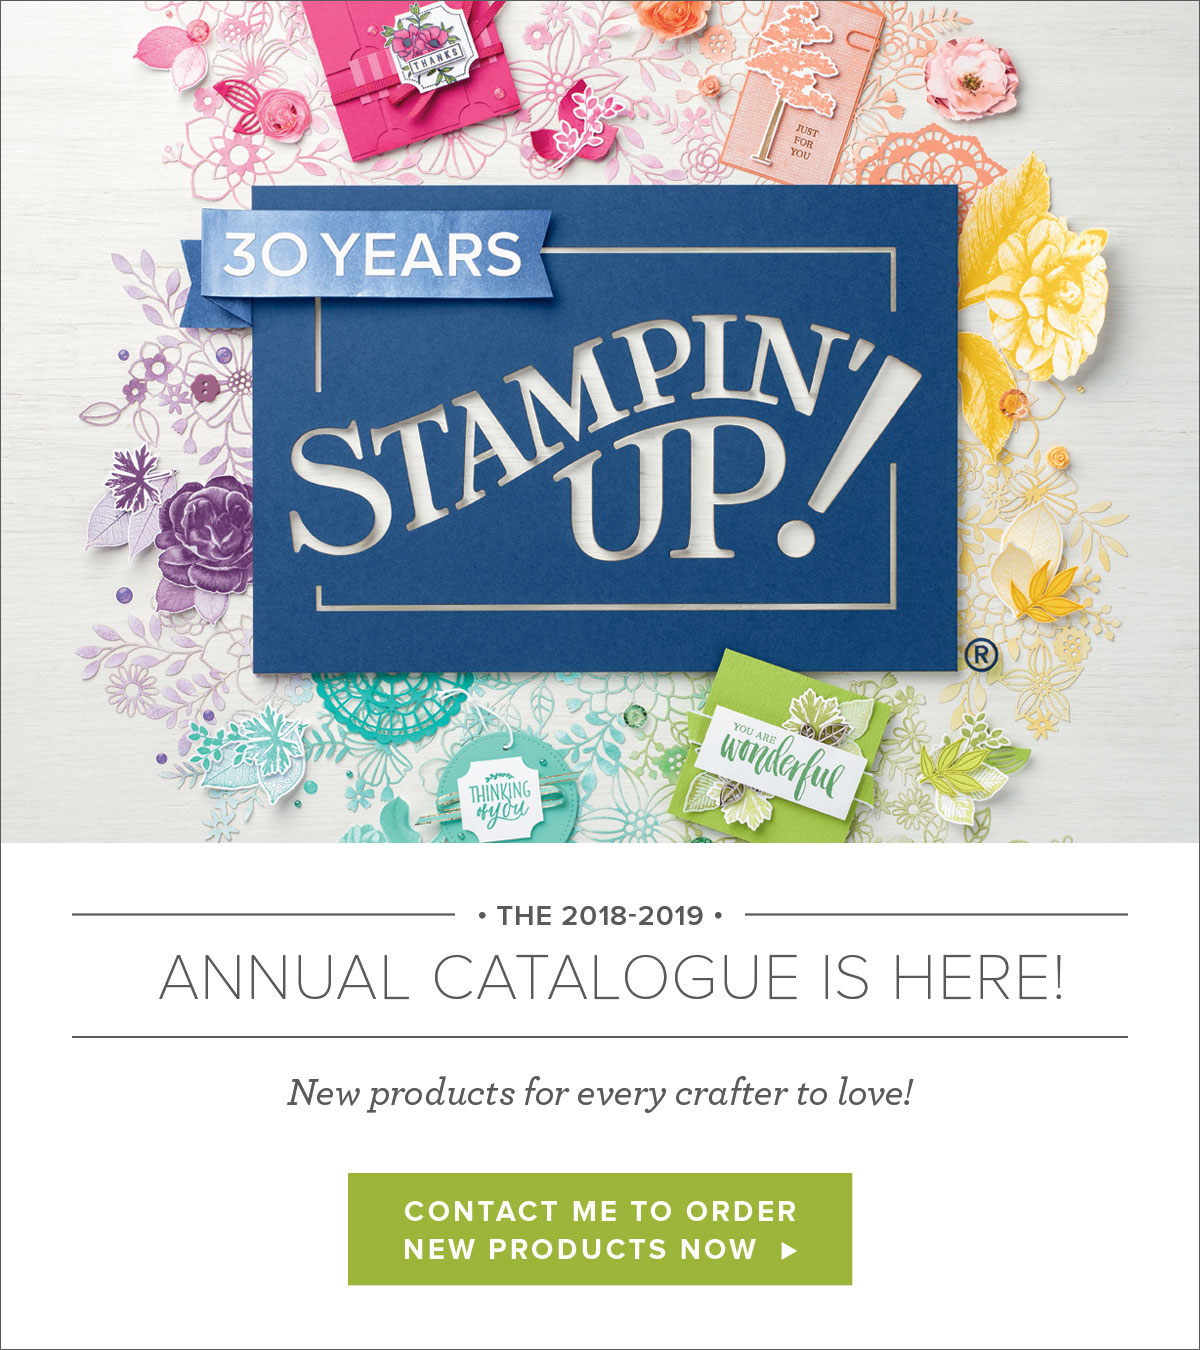 Stampin' Up! 2018/2019 Annual Catalogue